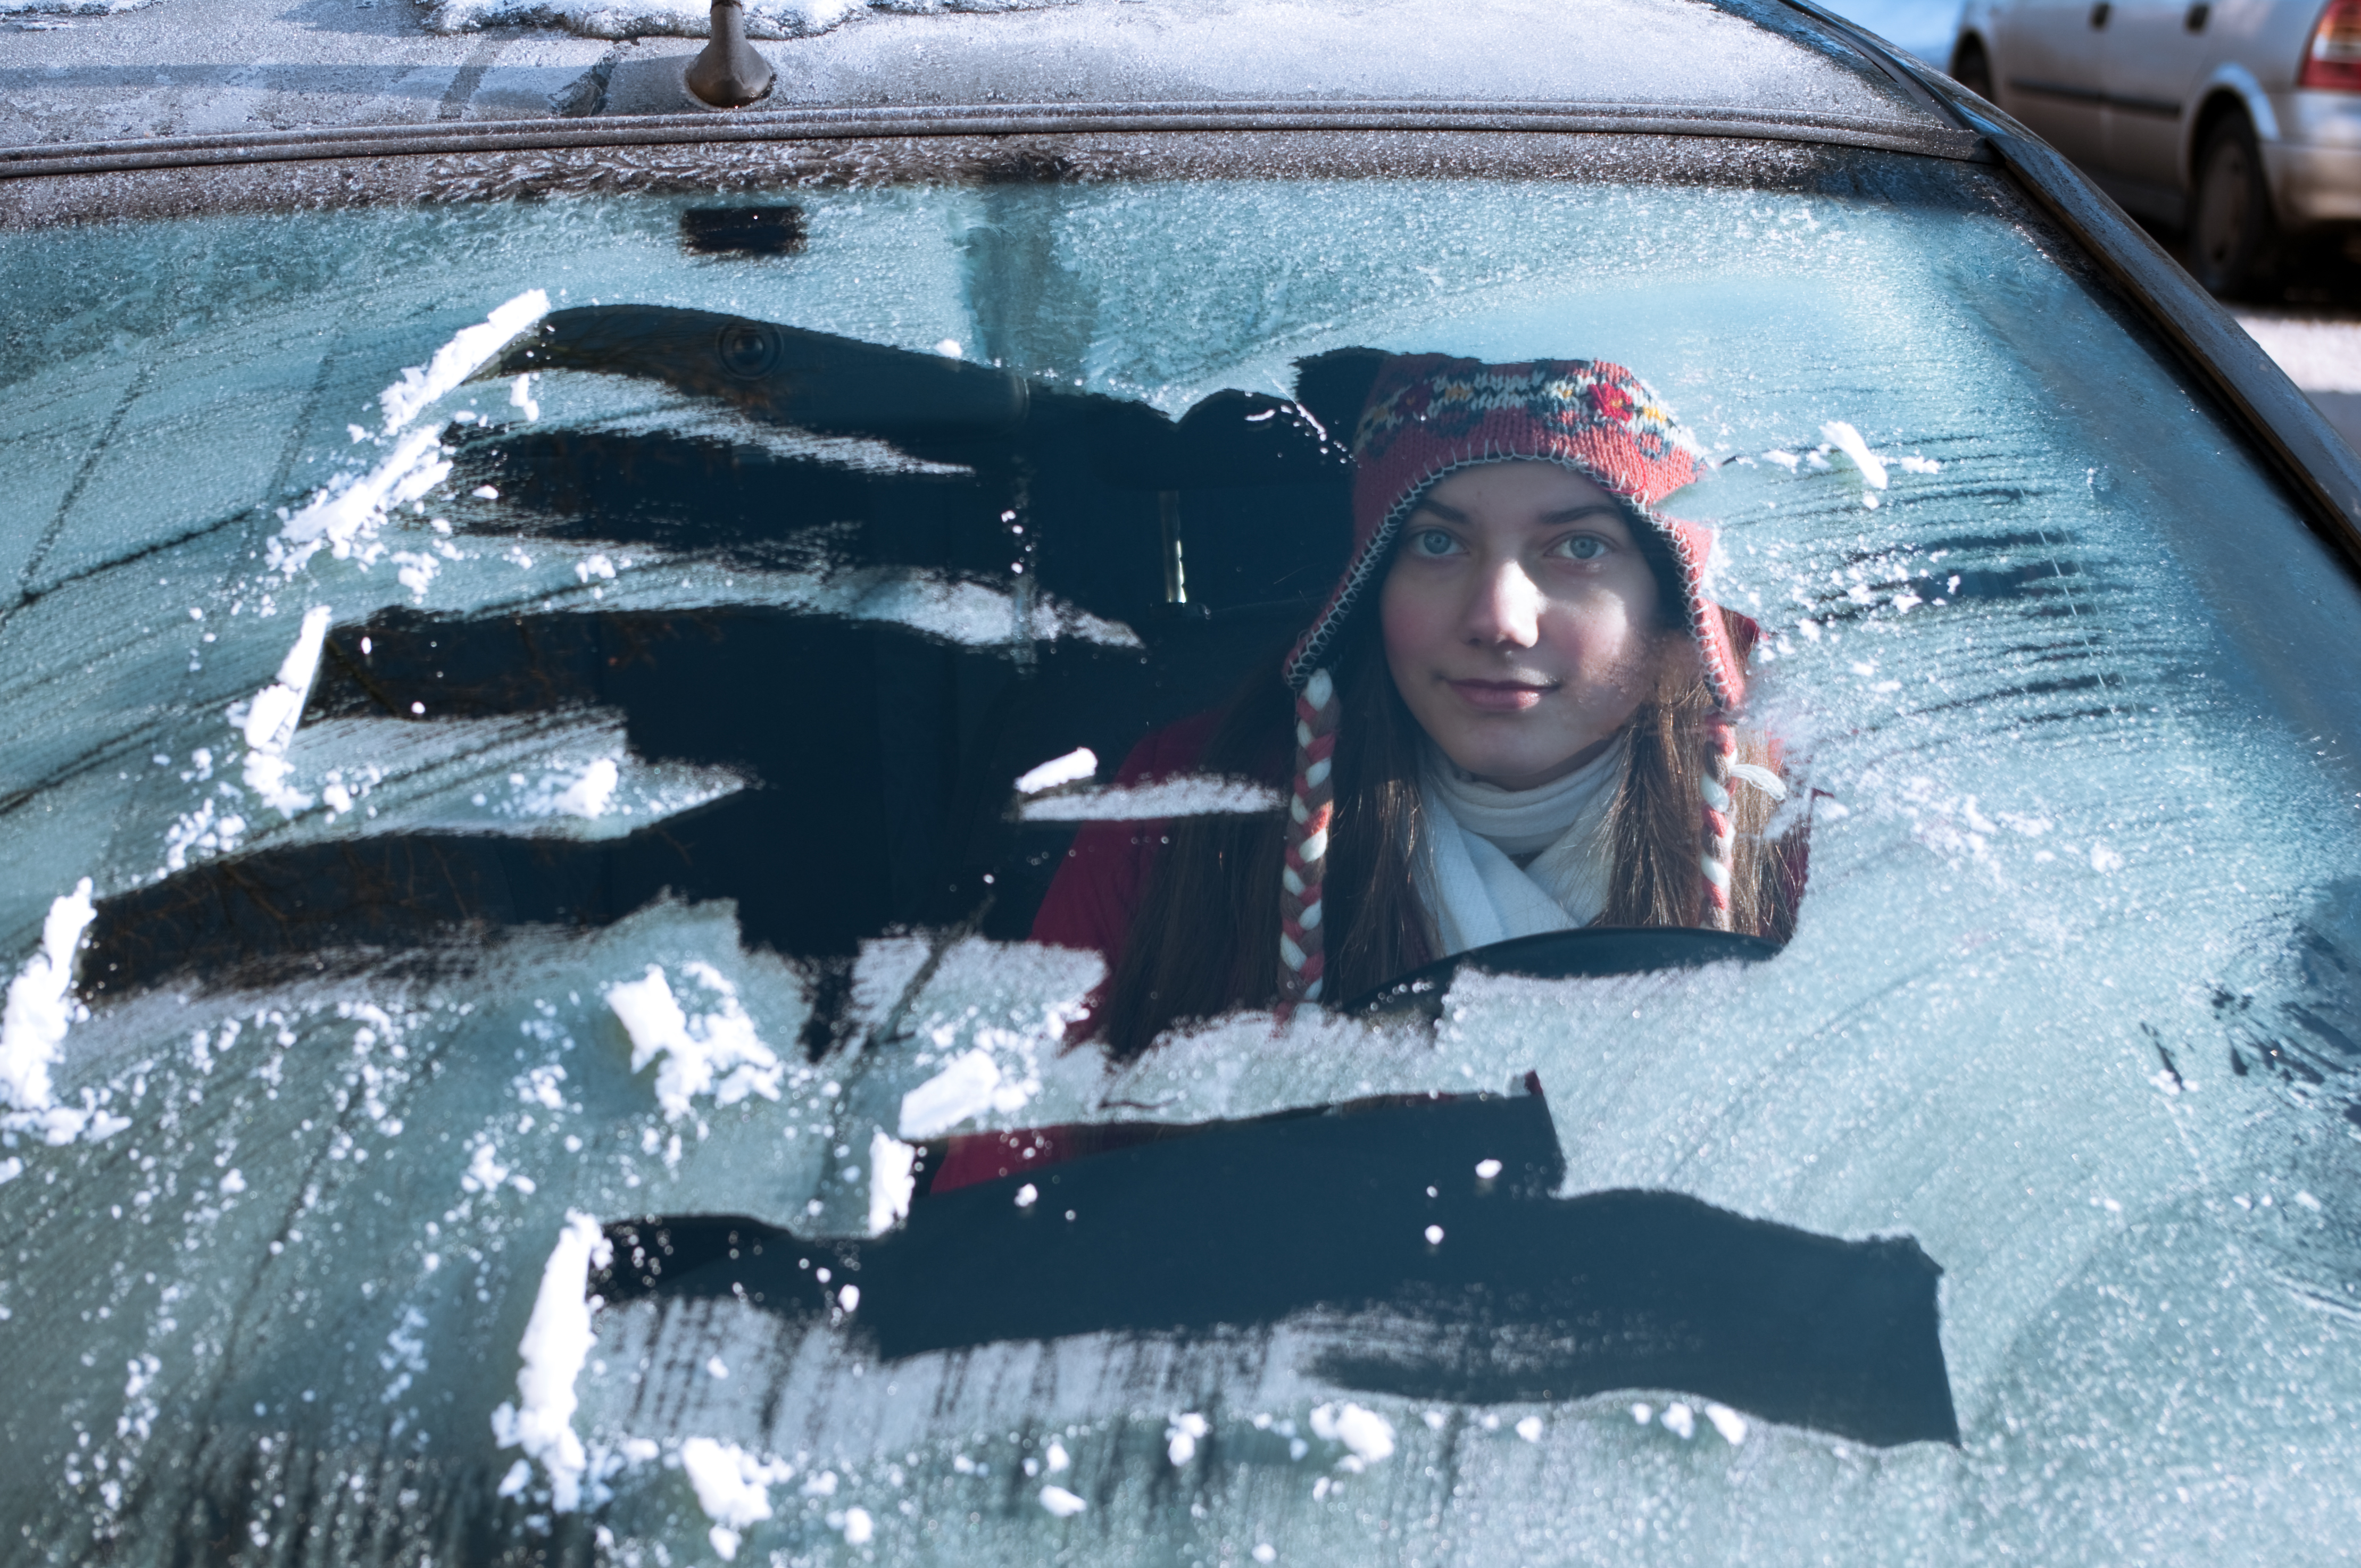 Young female driving a car, but did not scrap all of the snow off of the windshield.